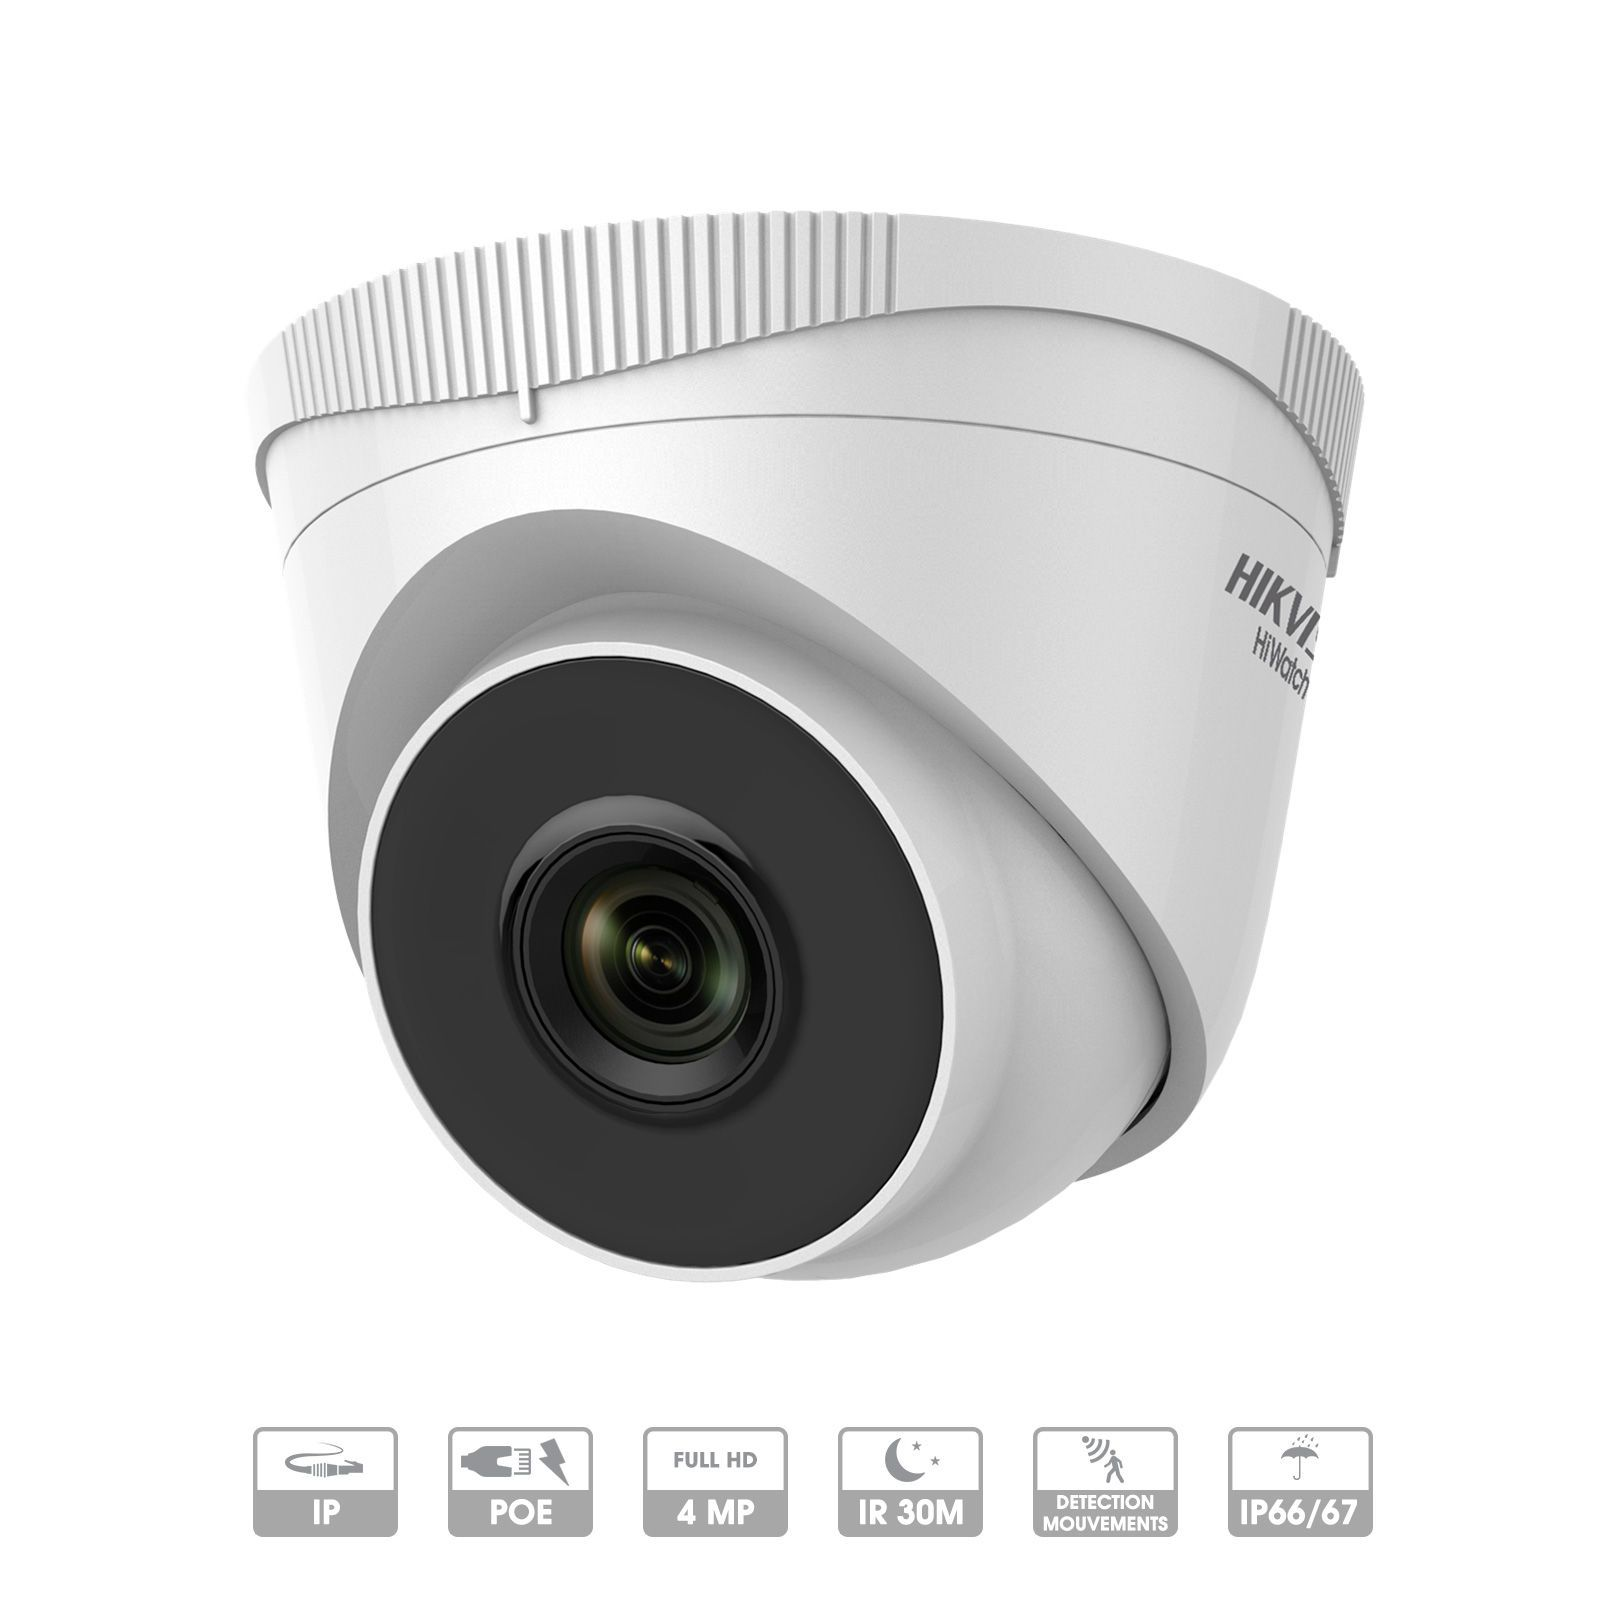 CAMERA HIKVISION HIWATCH IP DOME FIXE 4 MP